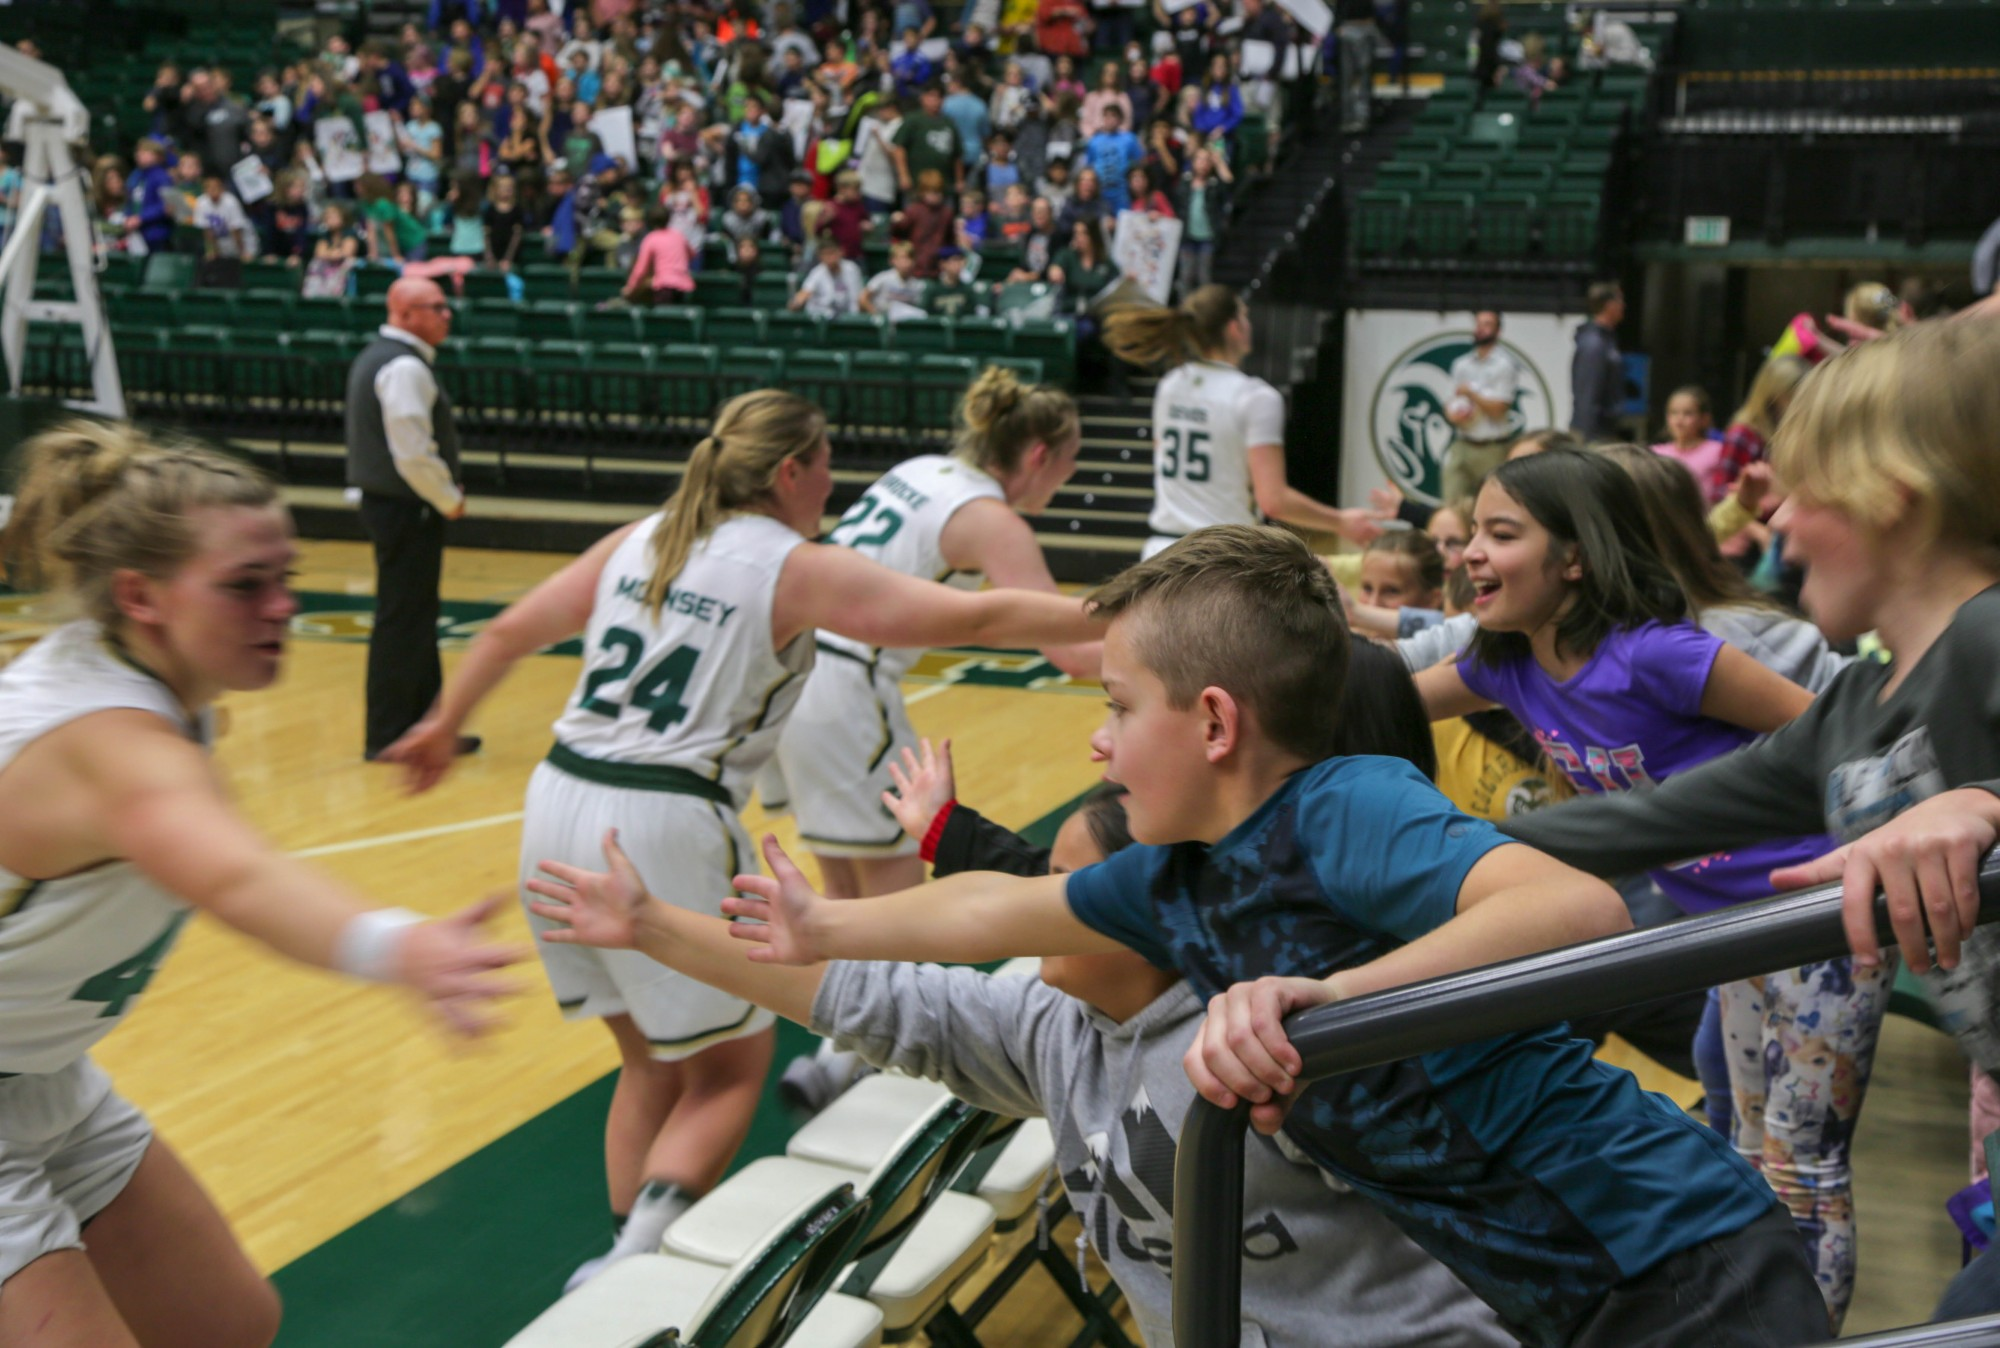 CSU women basketball players high five PSD students at the game.